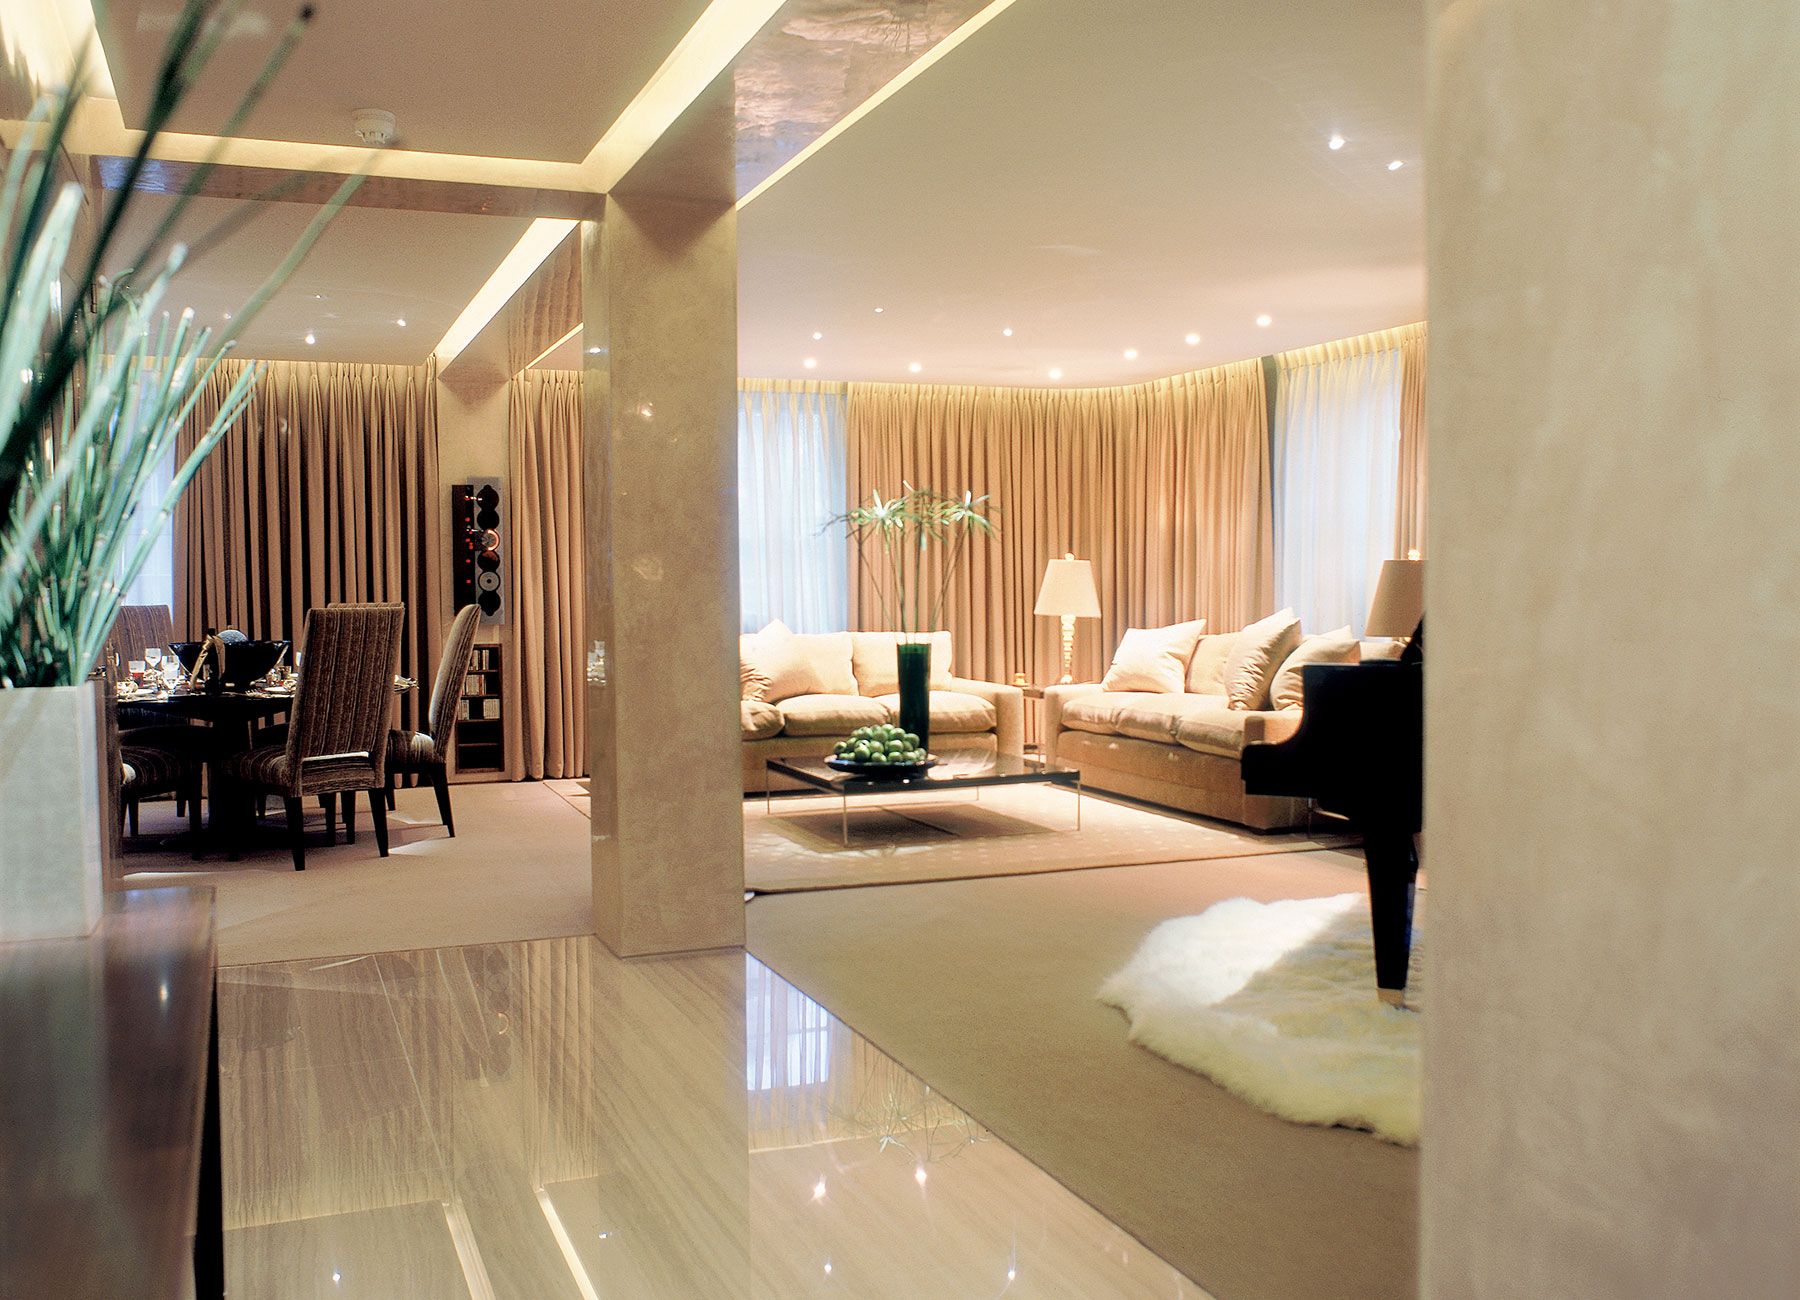 International luxury interior designers based in london for Interior designers based in london